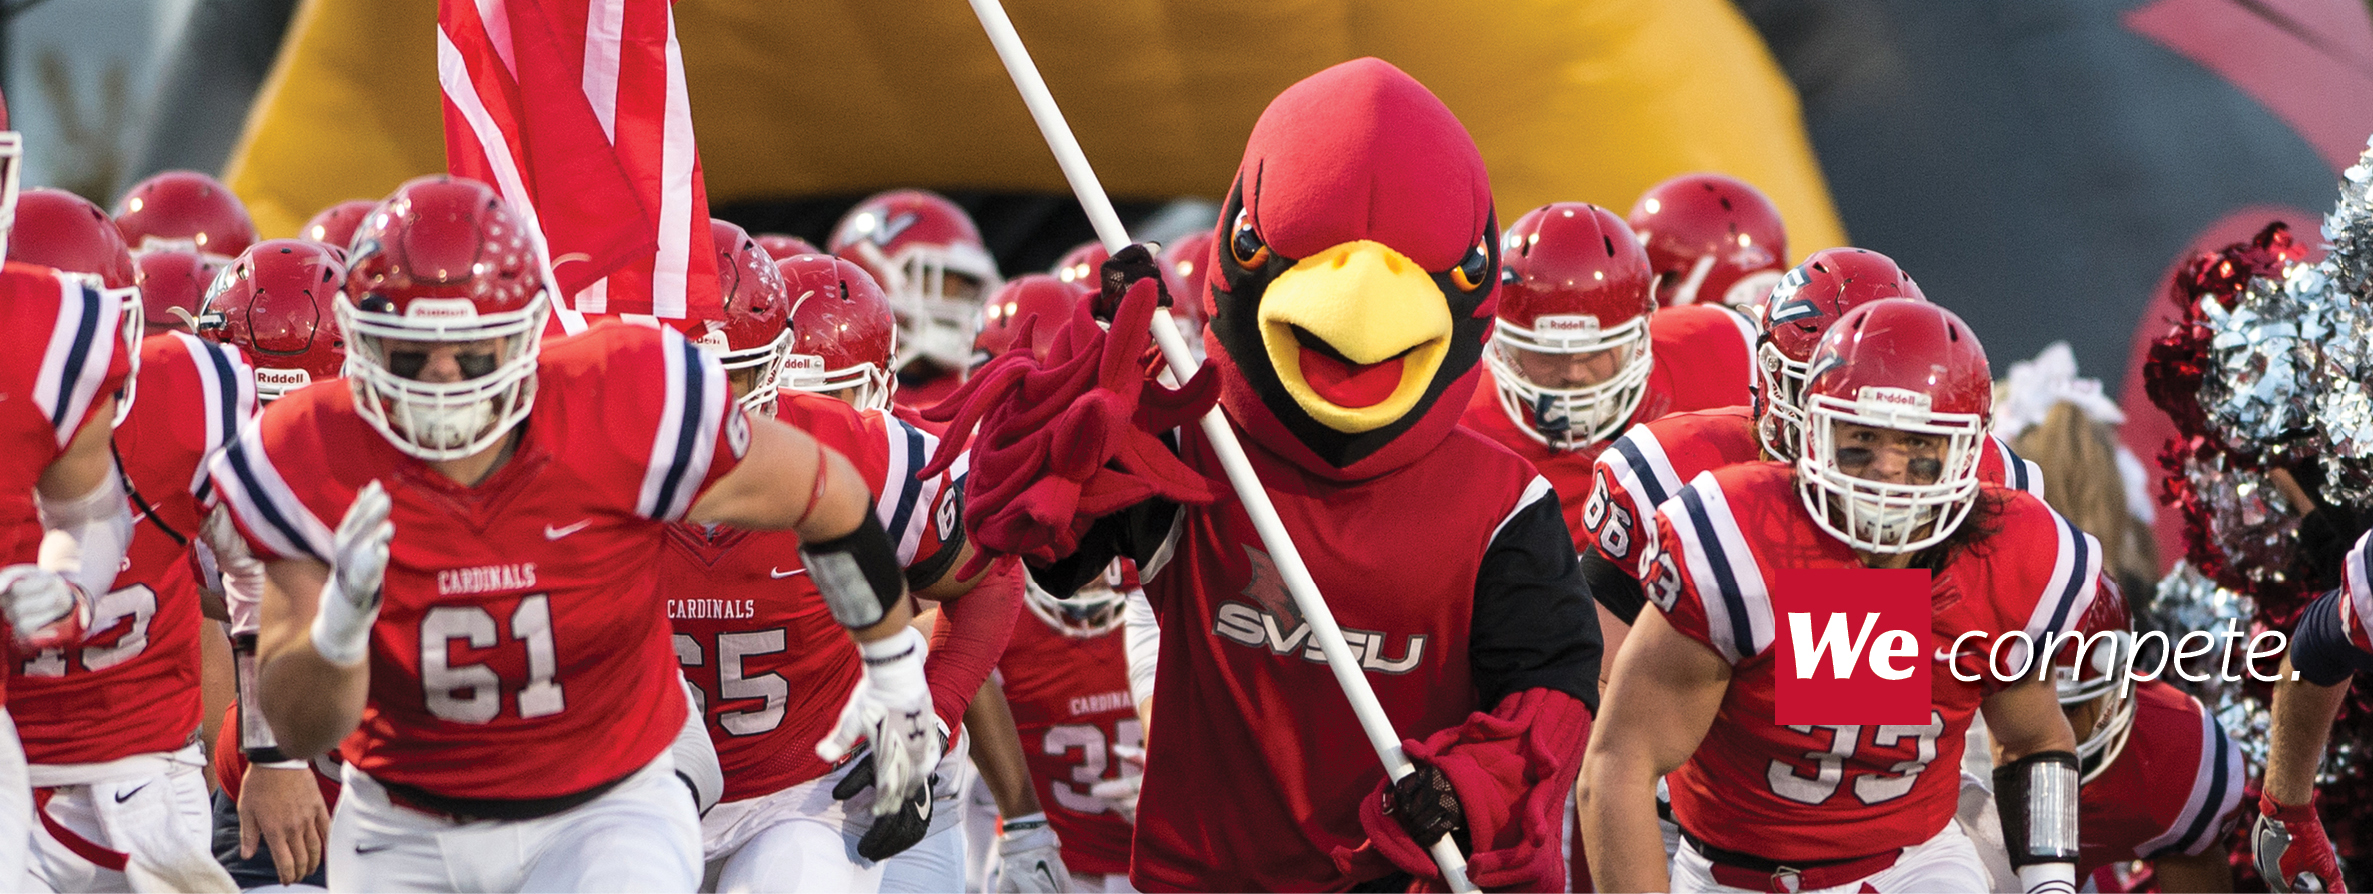 Football team running onto field holding SVSU flag with SVSU mascot Coop.